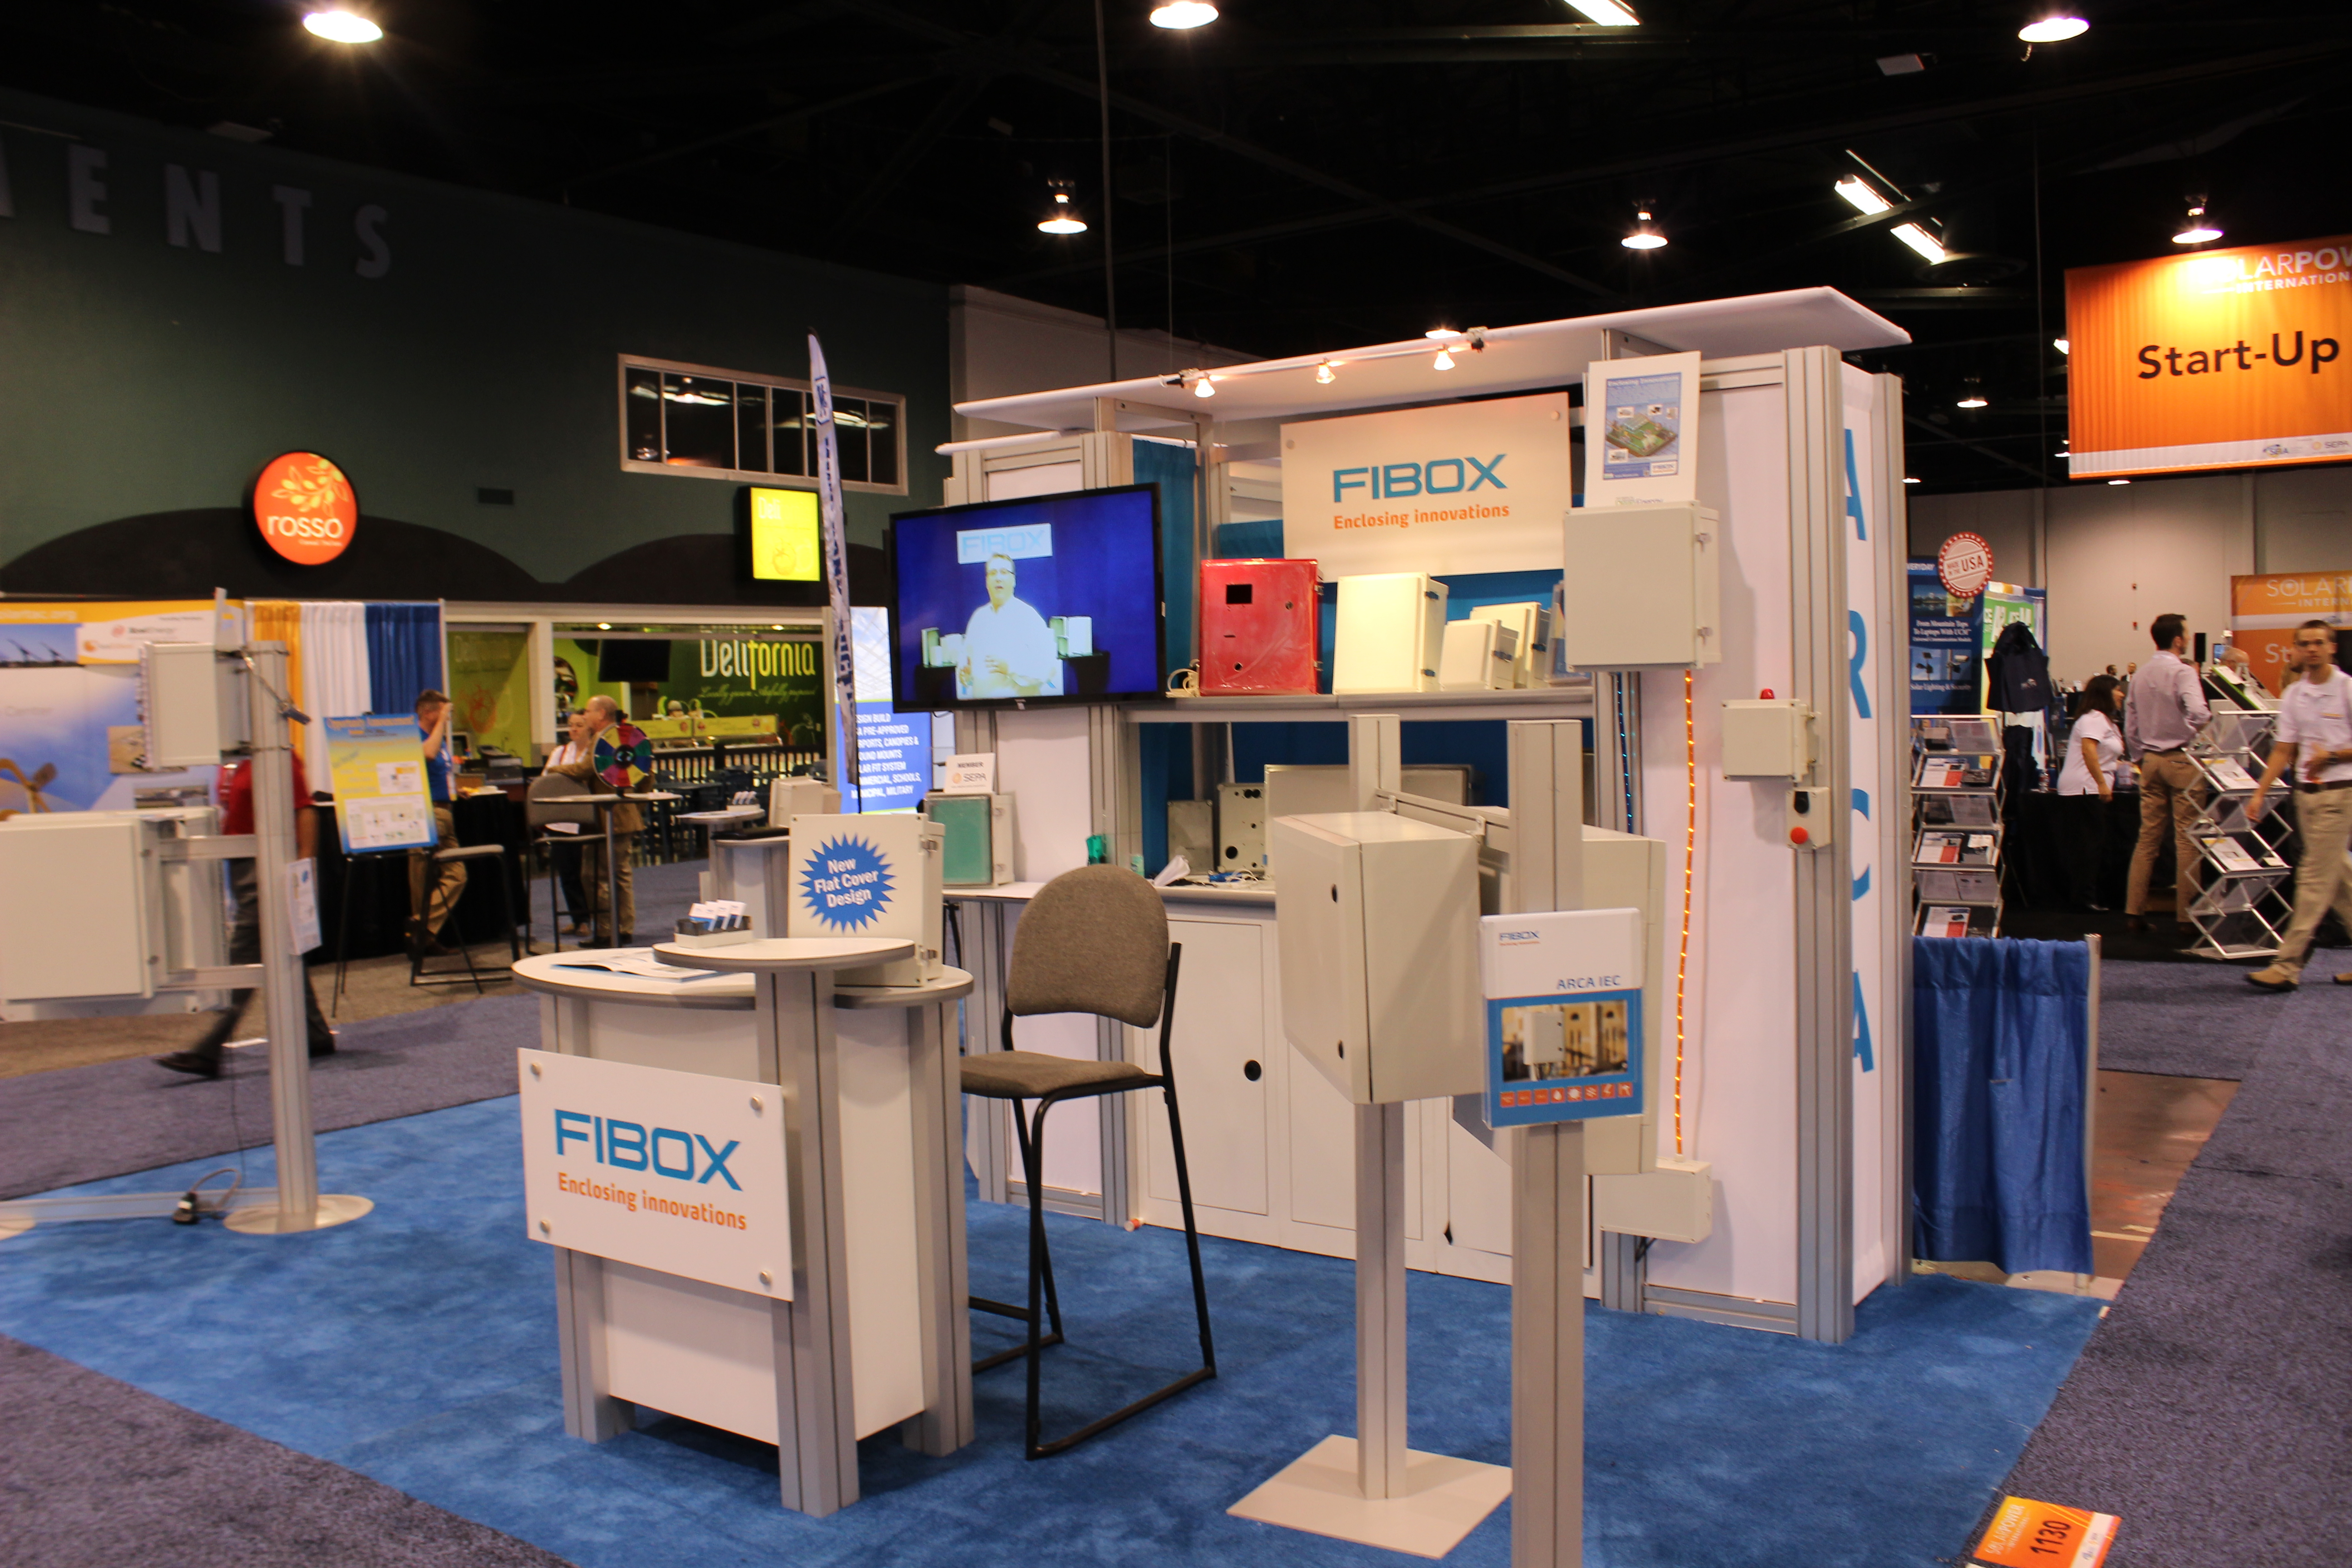 Fibox takes the stage at Solar Power international 2015